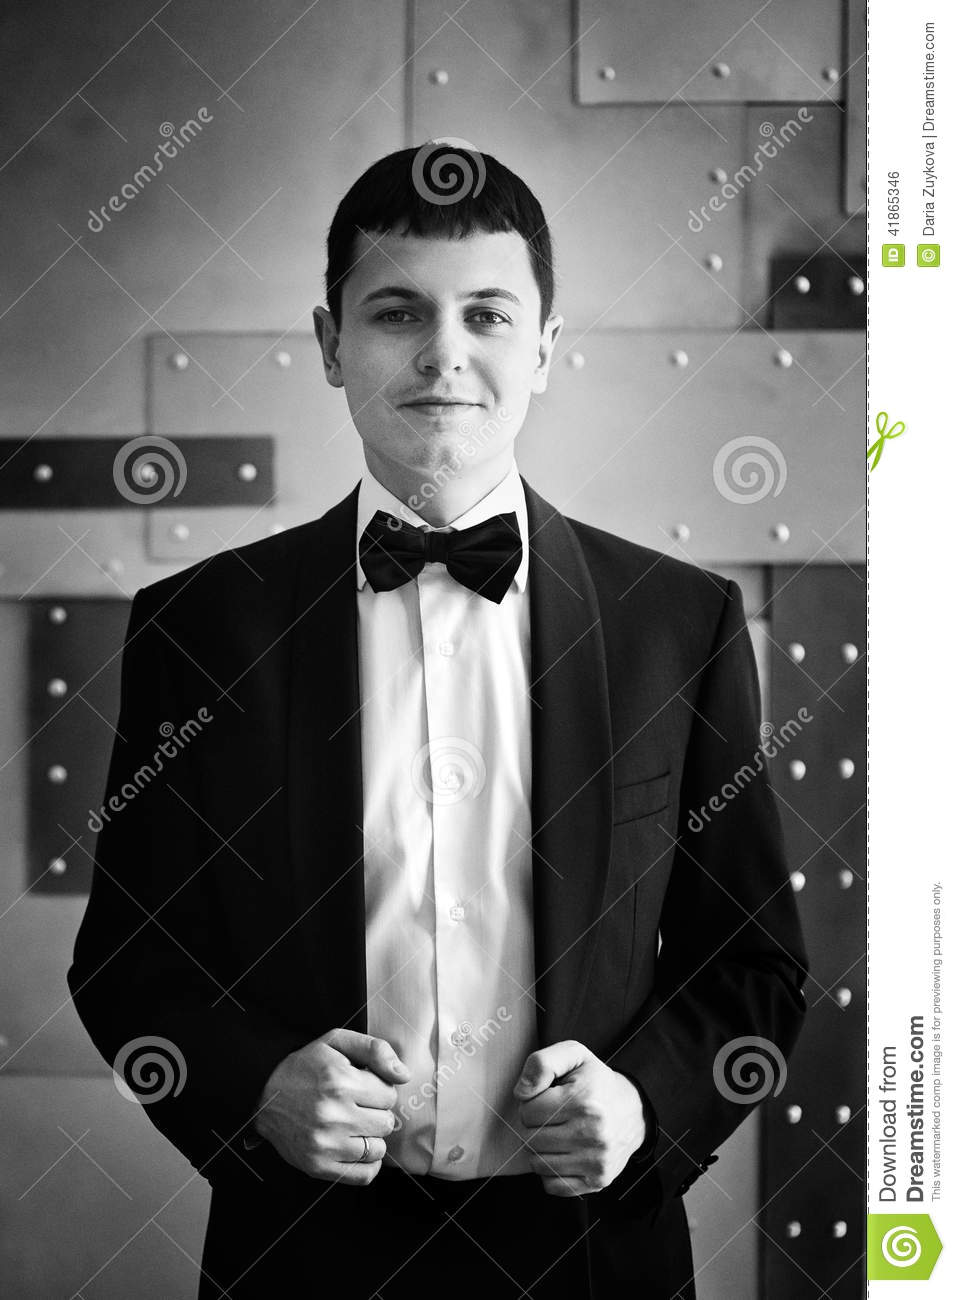 Handsome Man In Tuxedo Stock Photo - Image: 41865346